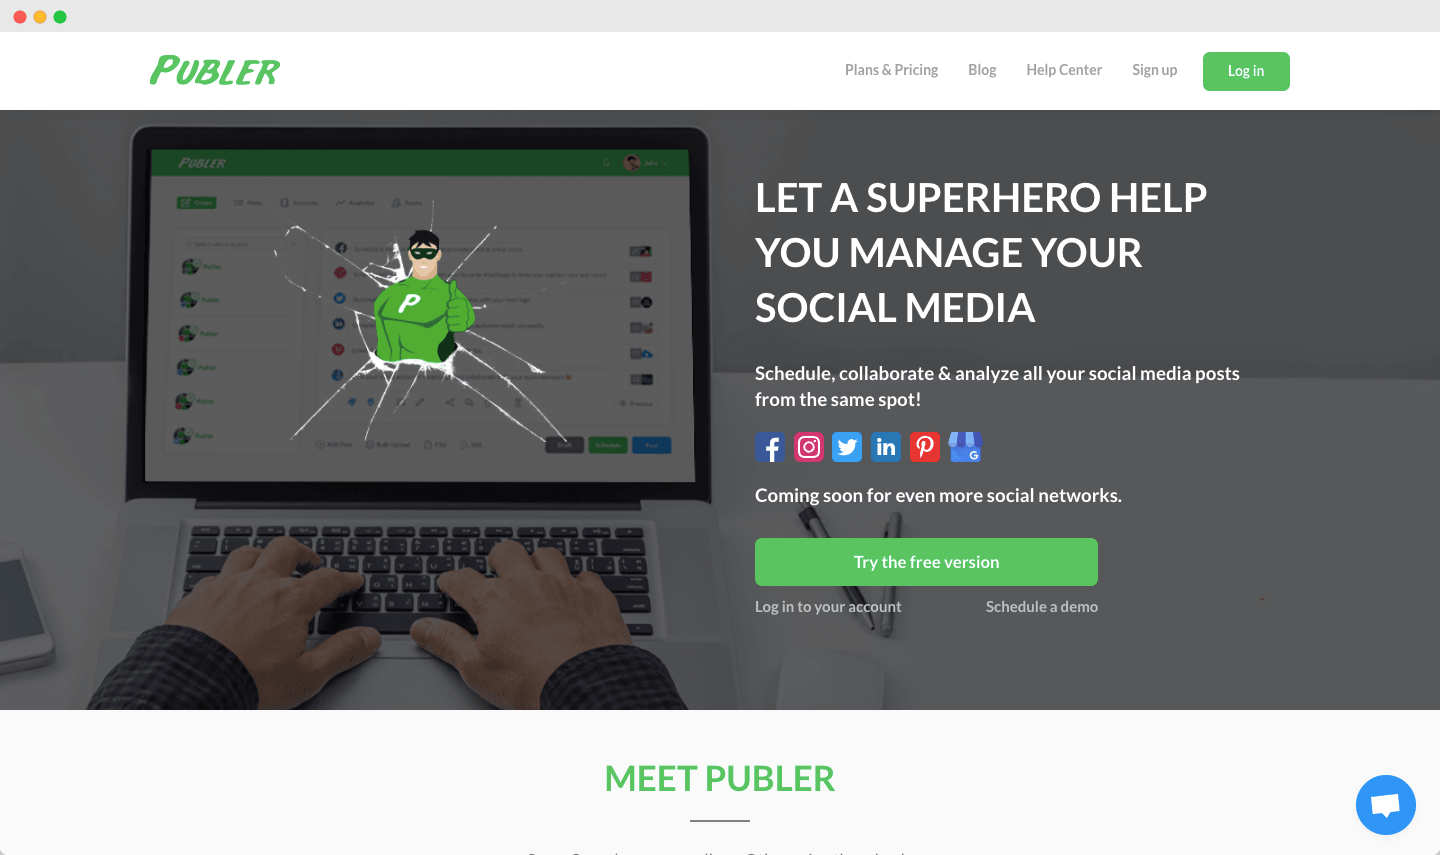 Publer Reviews: Is It Really A Superhero? Let's Find Out!